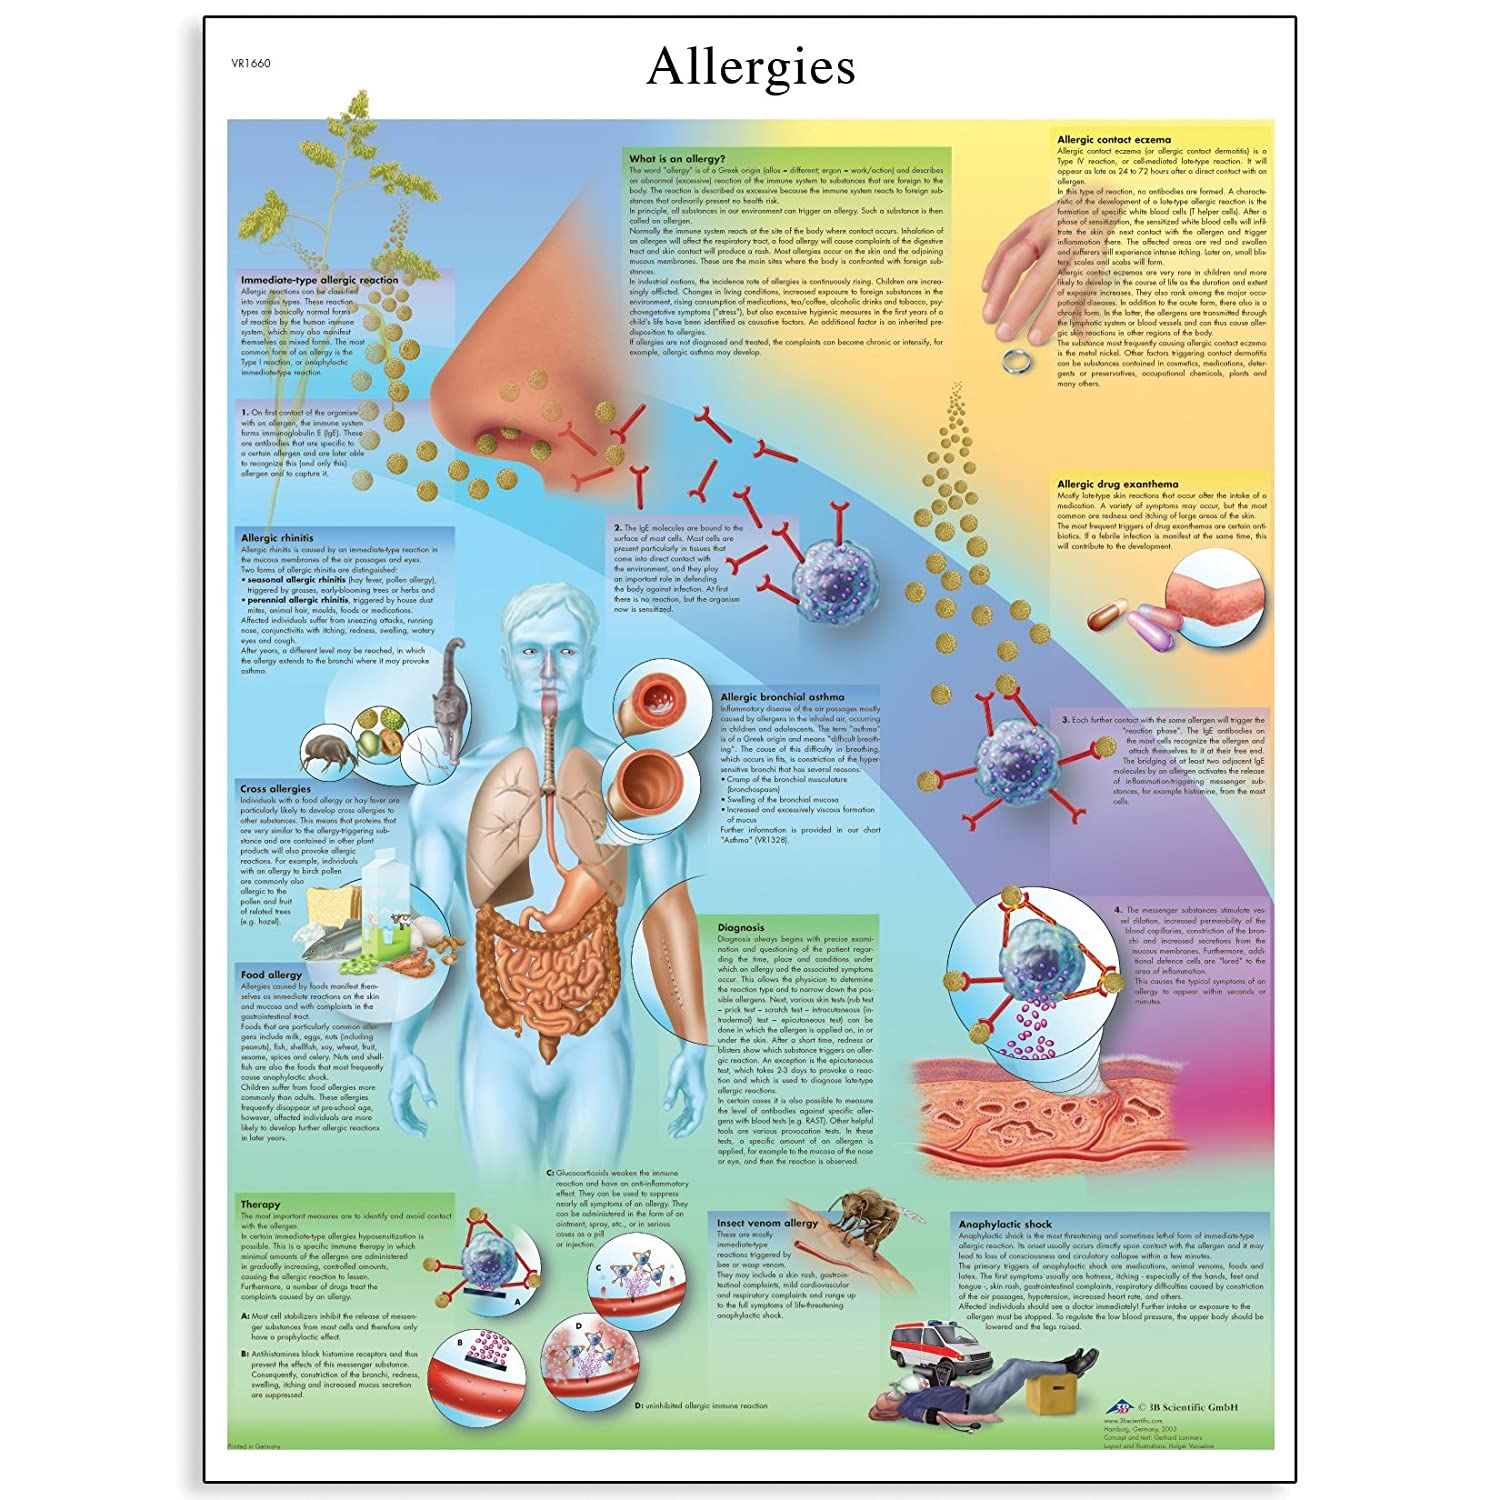 Poster Size 20 Width x 26 Height 3B Scientific VR1660L Glossy UV Resistant Laminated Paper Allergies Anatomical Chart